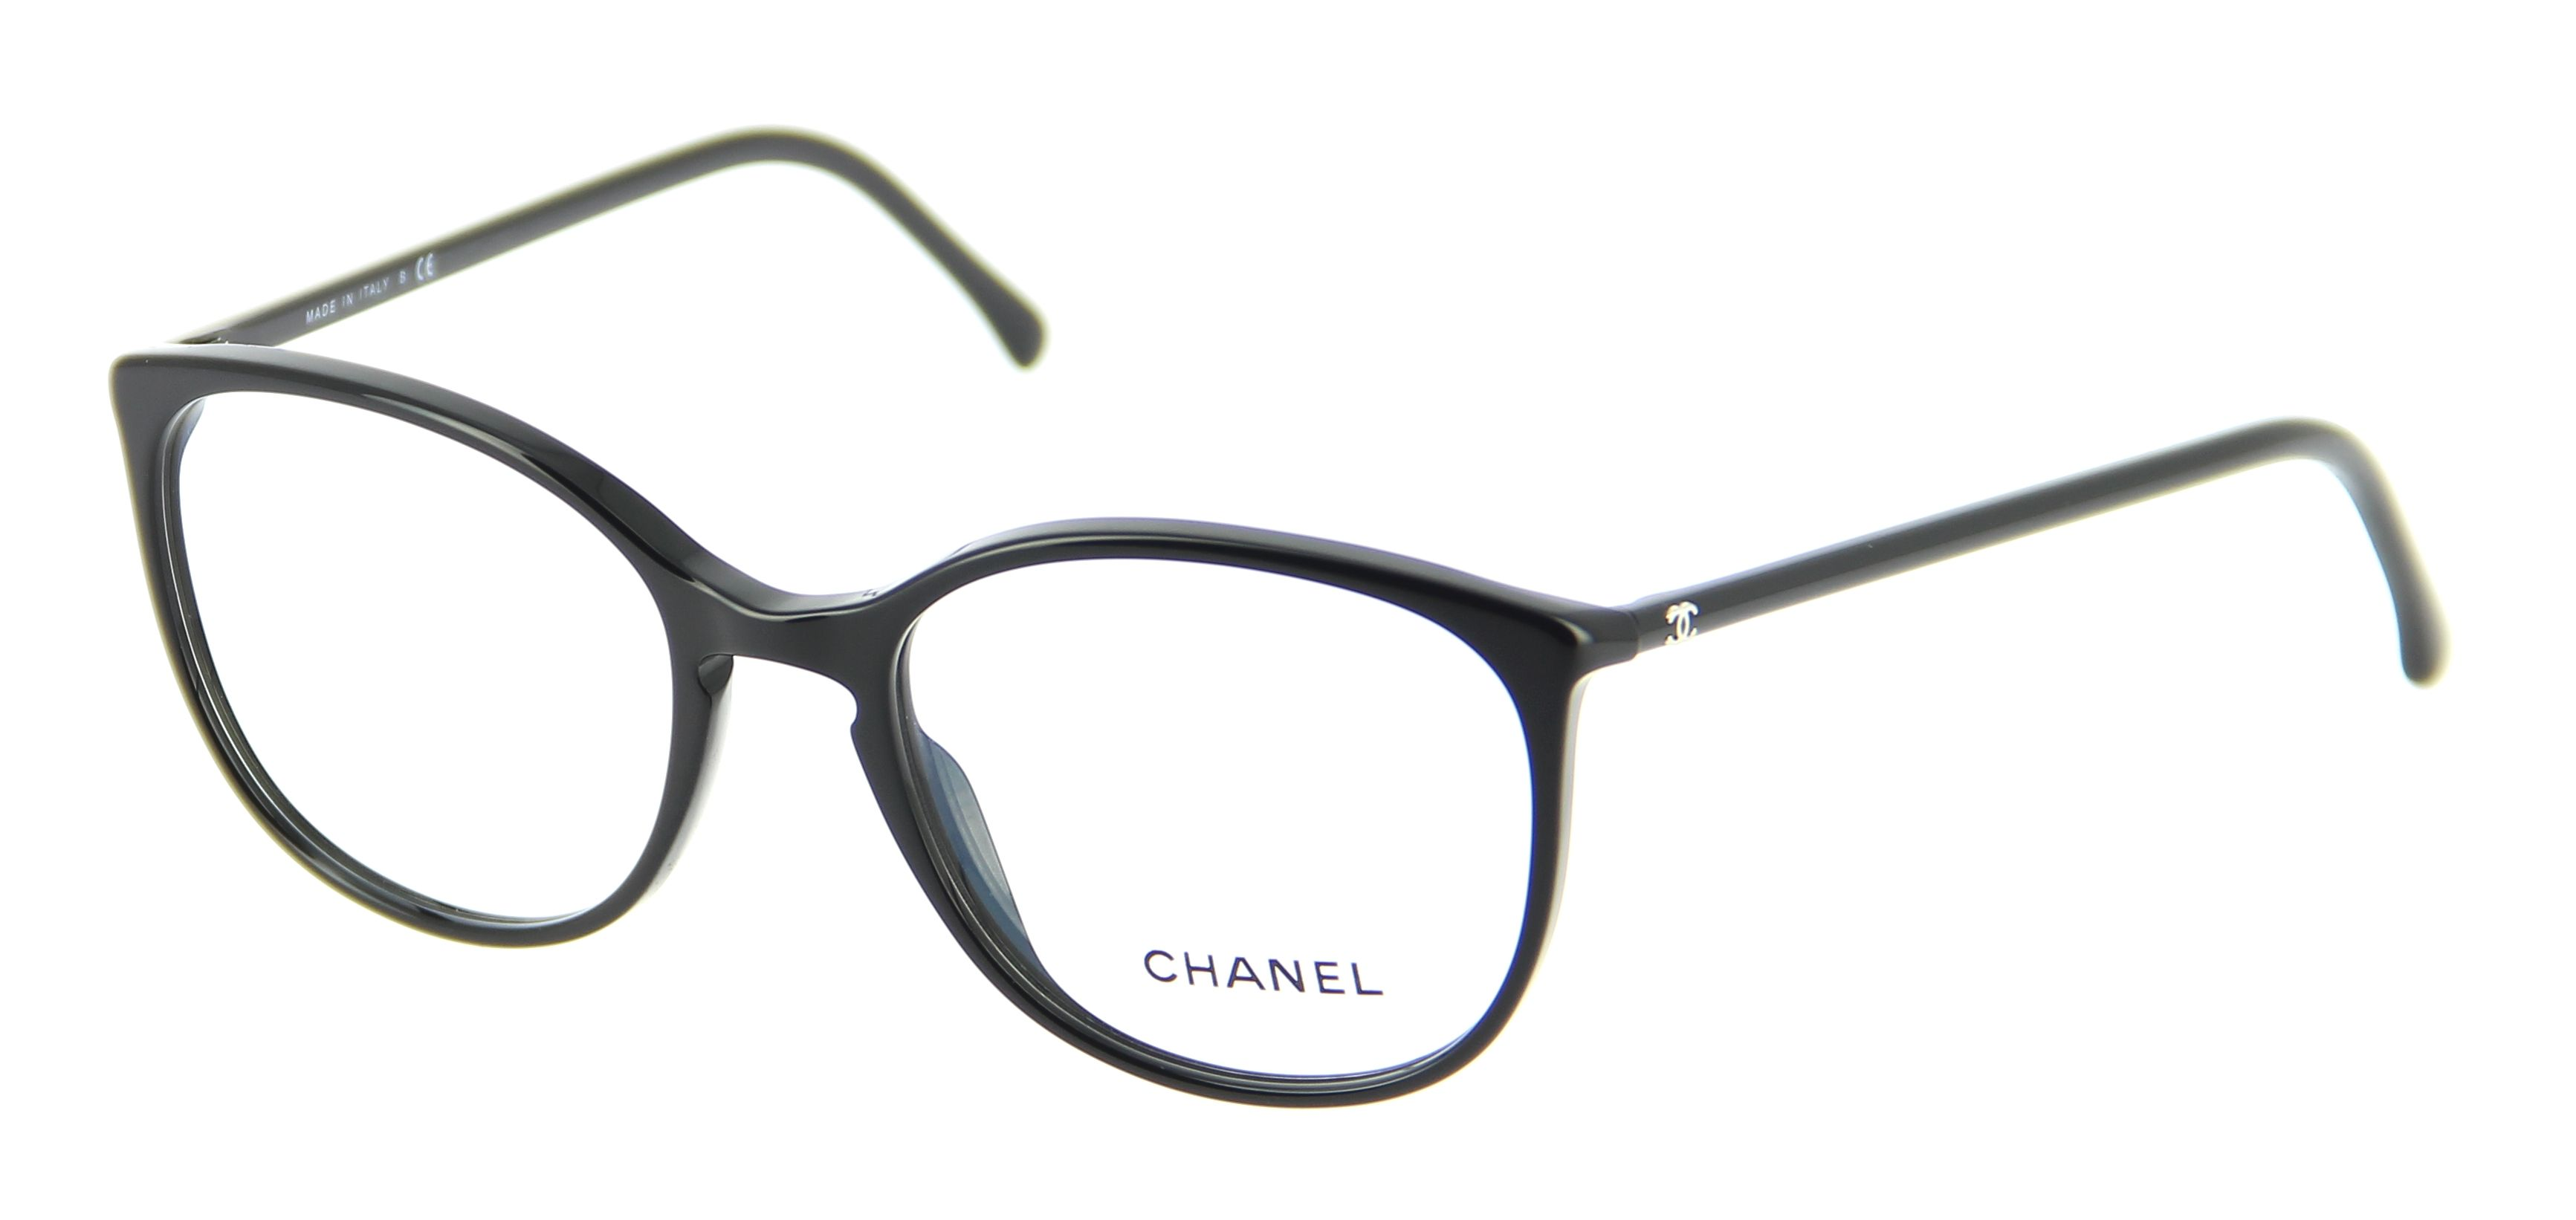 9844b58476 eyewear glasses frames chanel